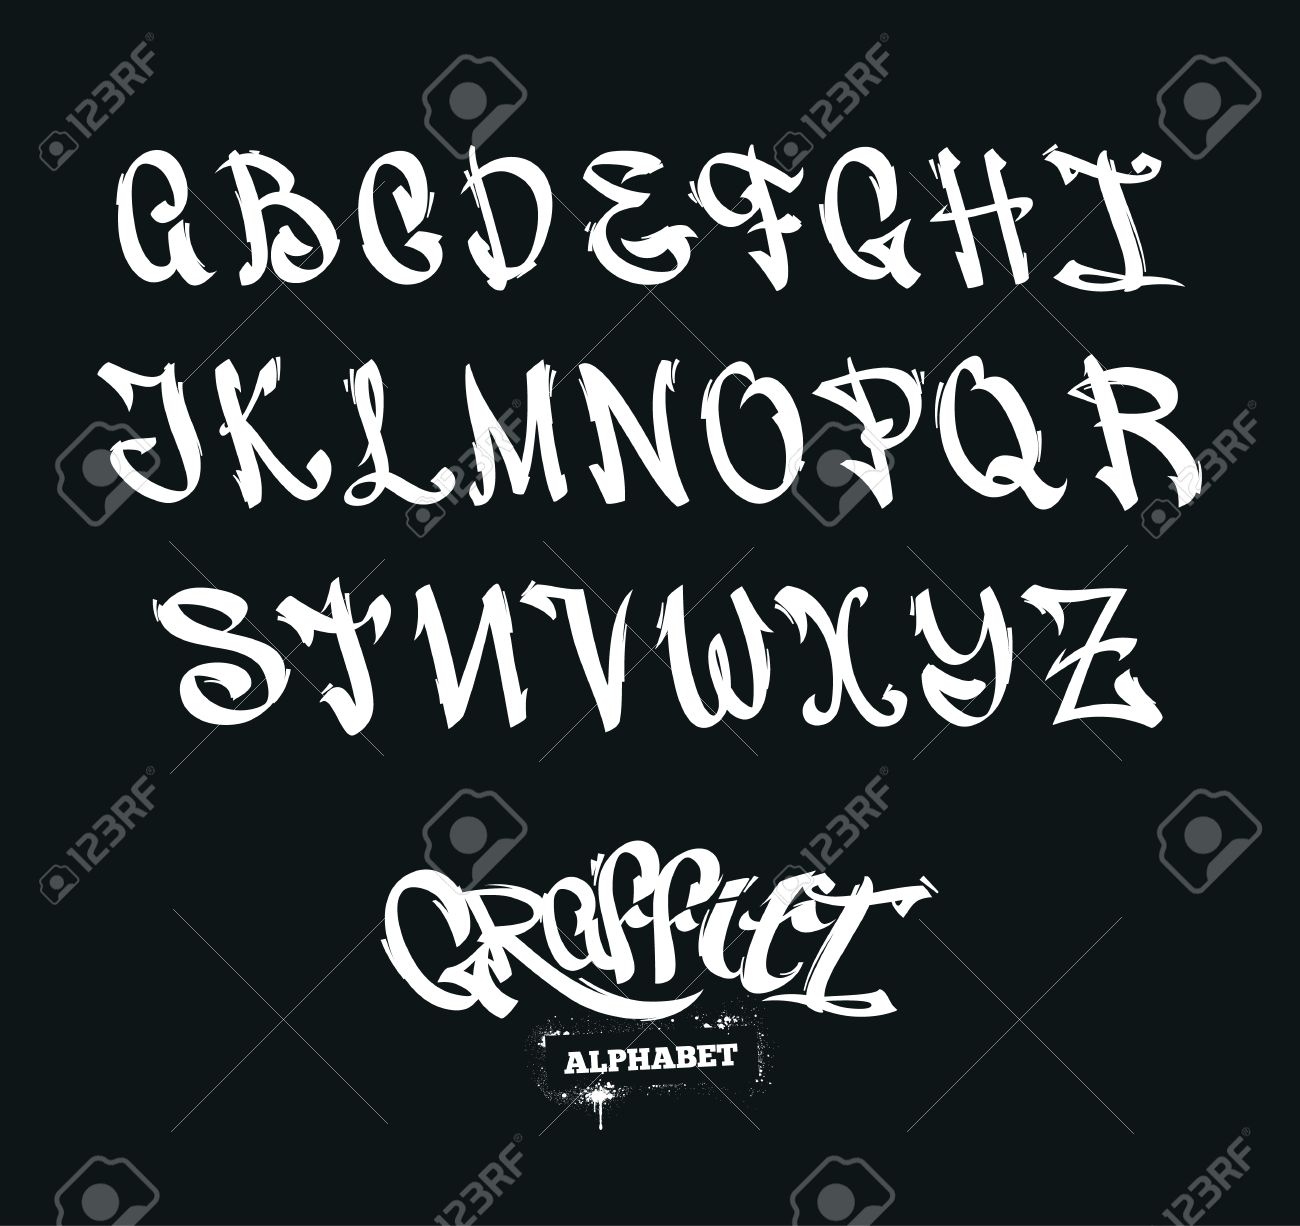 Set Of Graffiti Style Letters Street Art Alphabet Vector Symbols